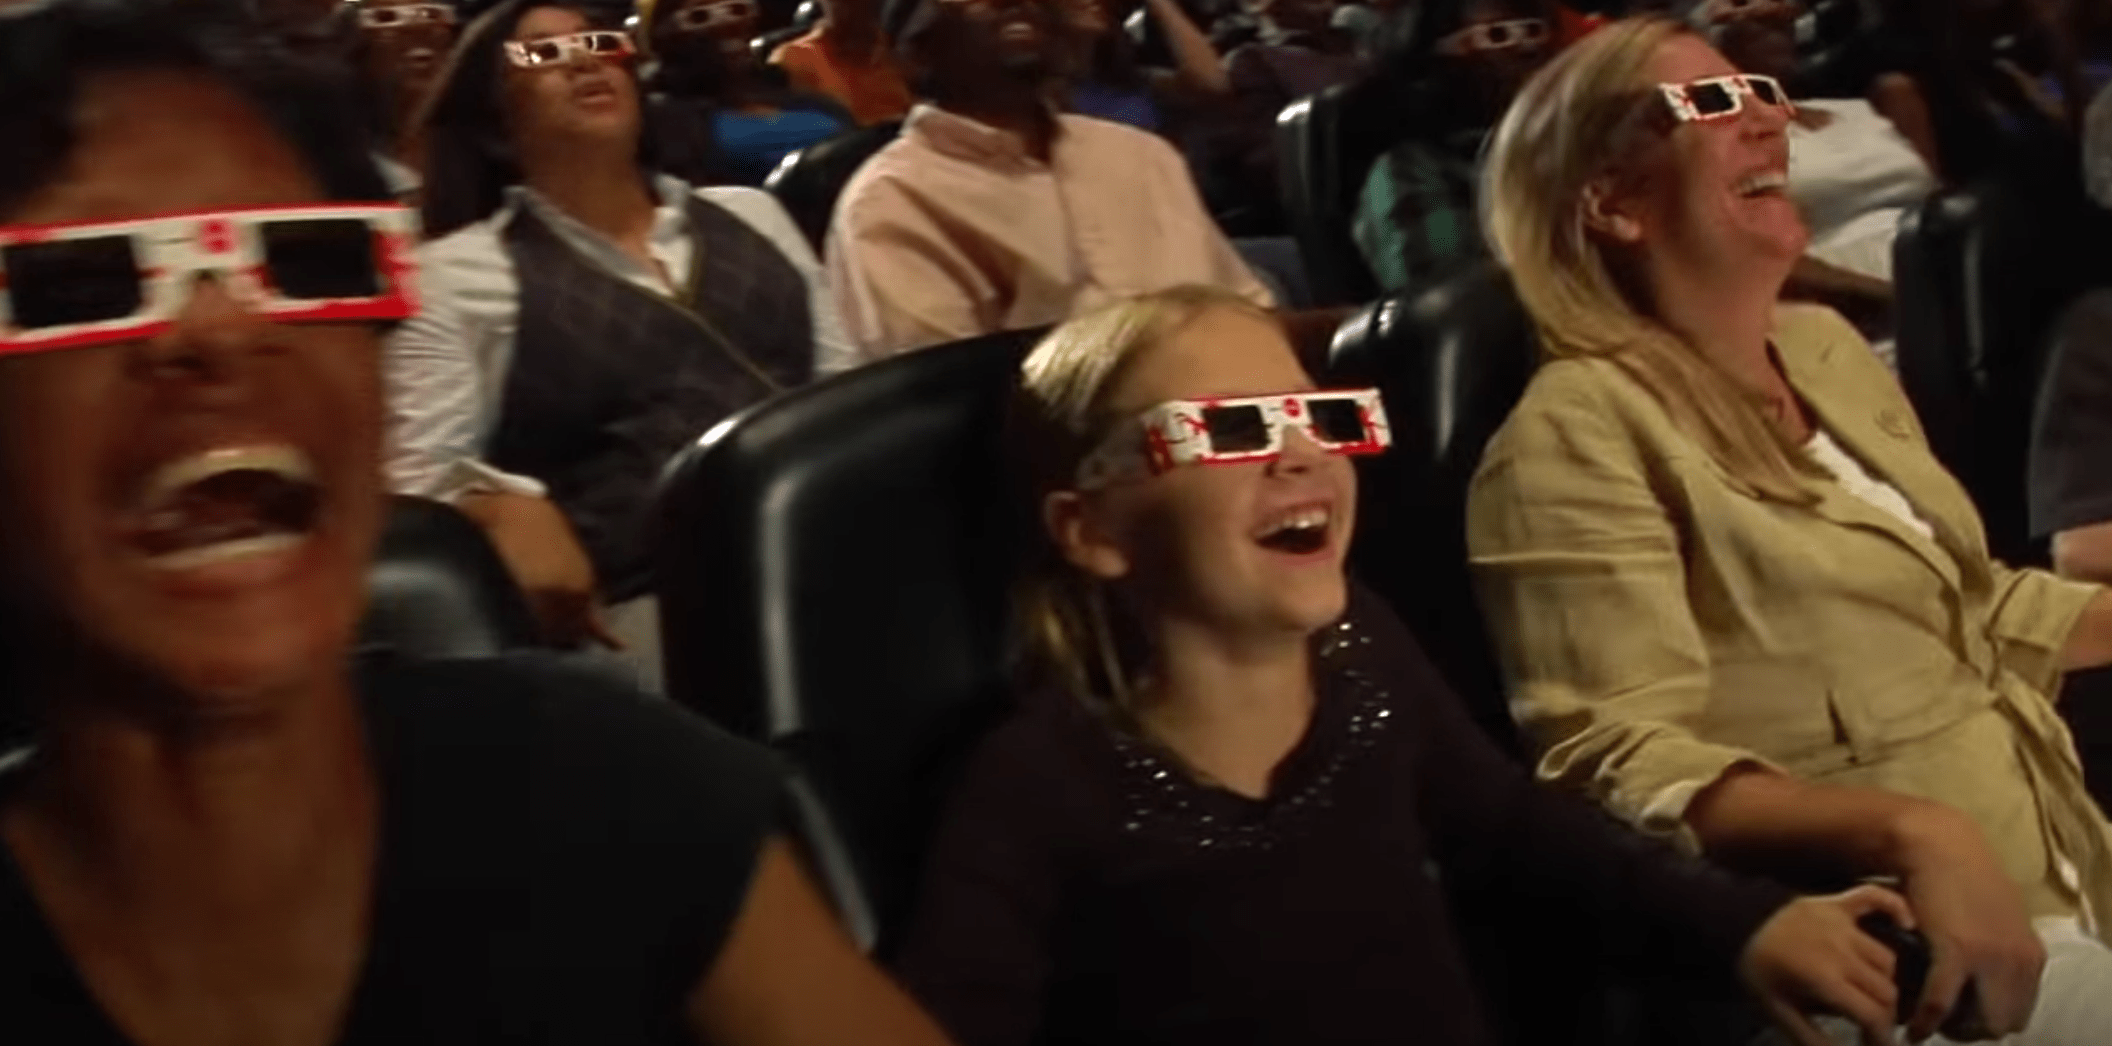 Audience members at the World of Coca-Cola wear 3-D glasses while watching a video.